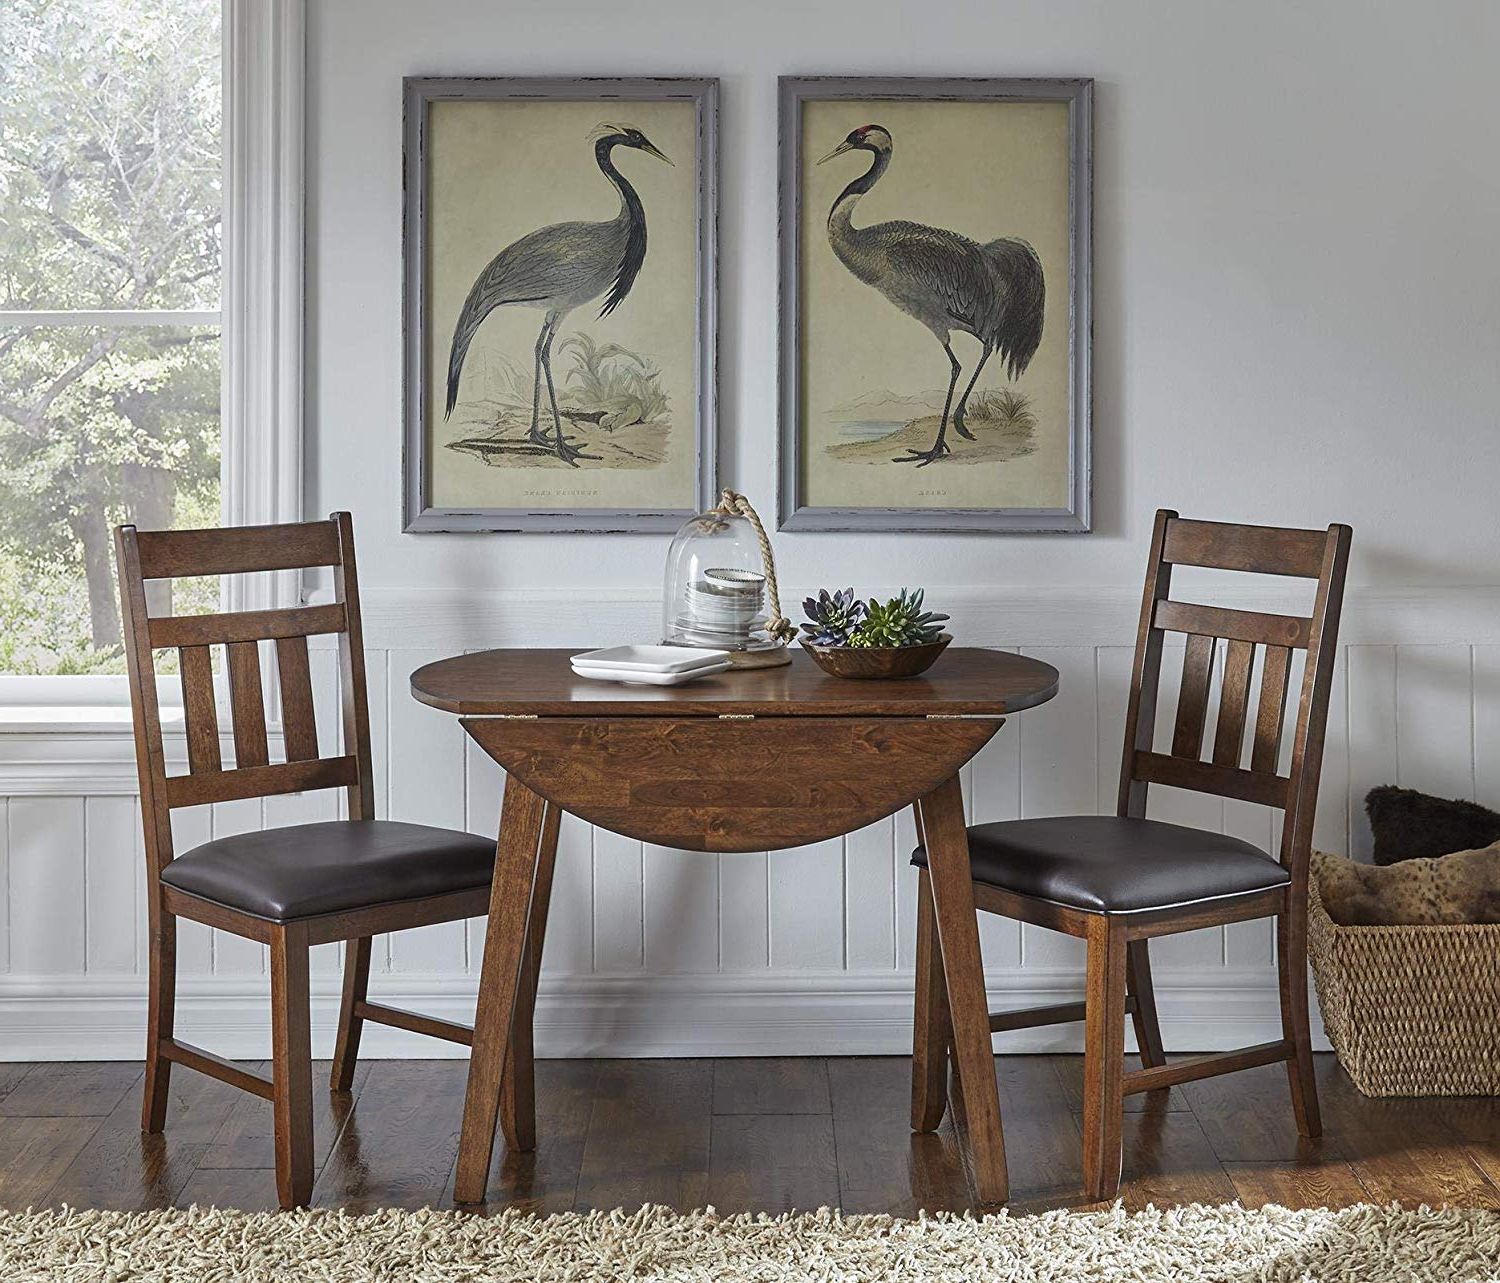 Newest Amazon – A America Mason 42Inch Round Dropleaf Table Within Transitional 4 Seating Double Drop Leaf Casual Dining Tables (View 4 of 25)